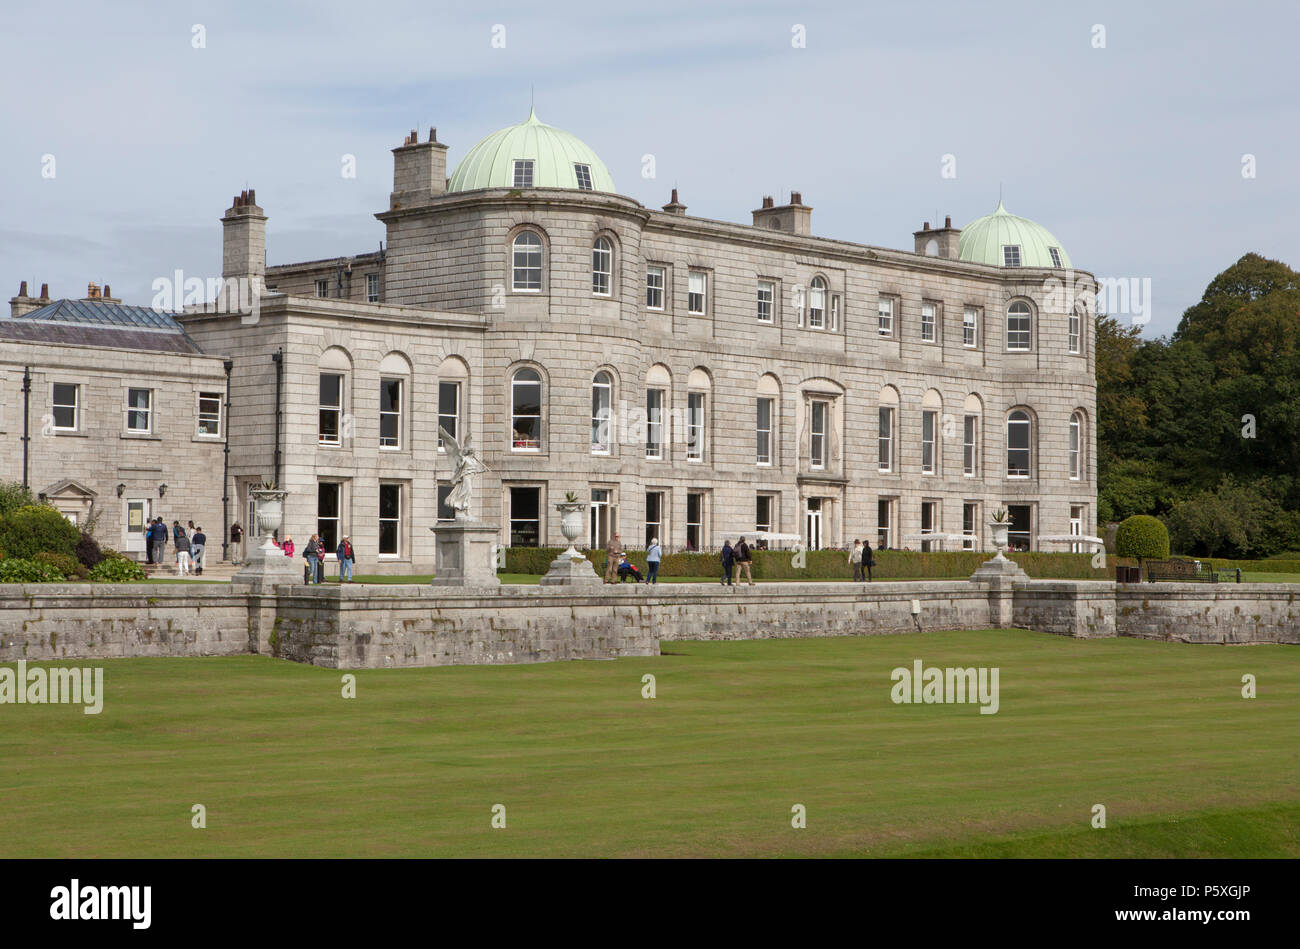 The Mansion House at Powercourt Gardens in Ireland, an important tourist destination Stock Photo